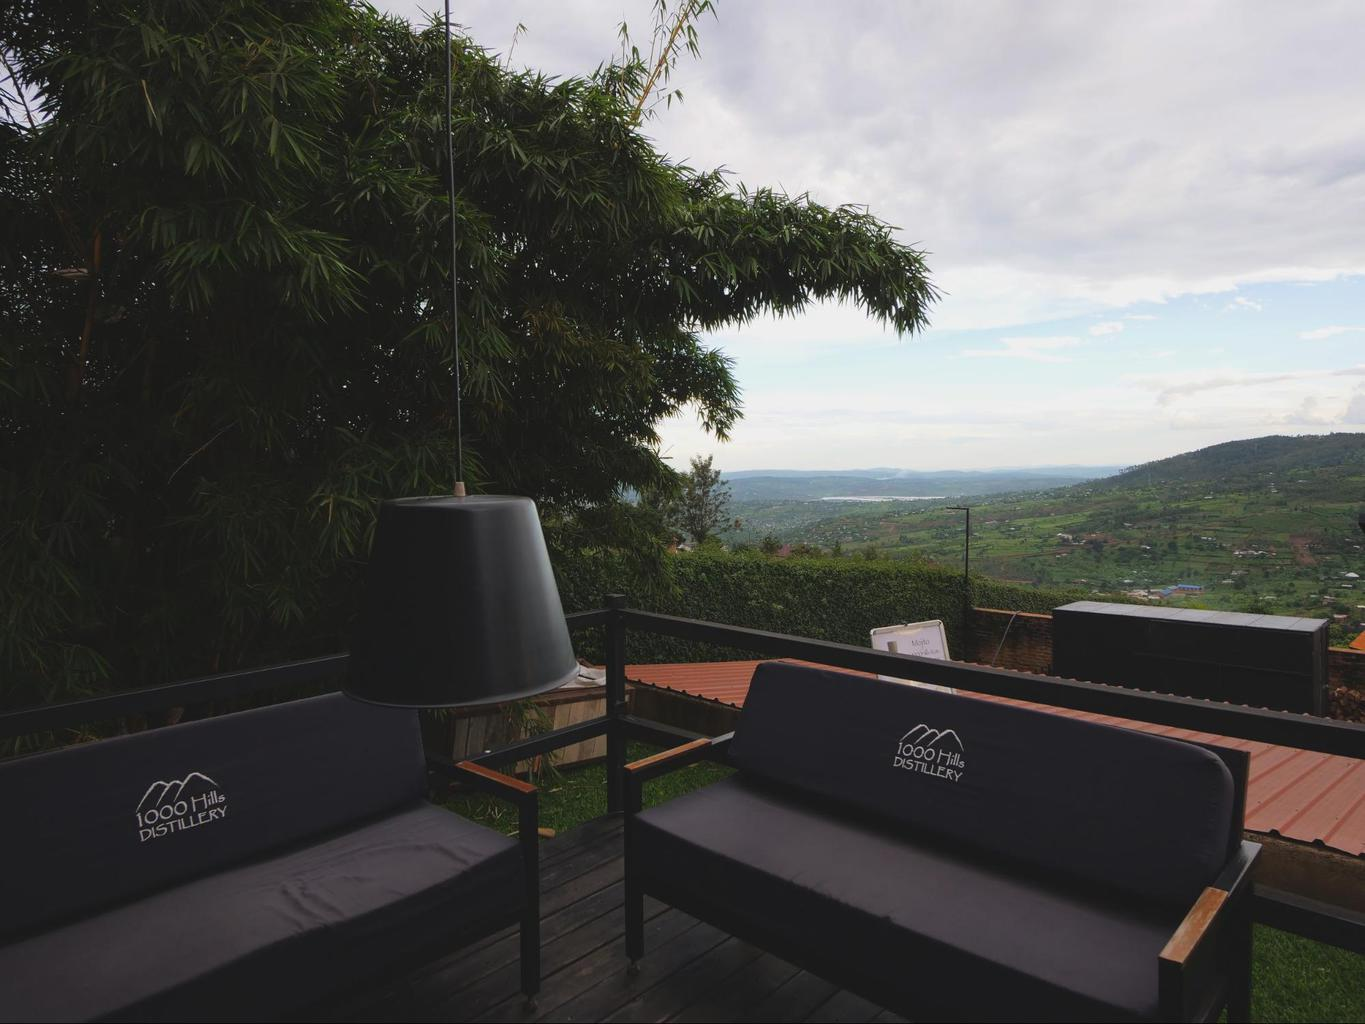 The views from 1000 Hills Distillery